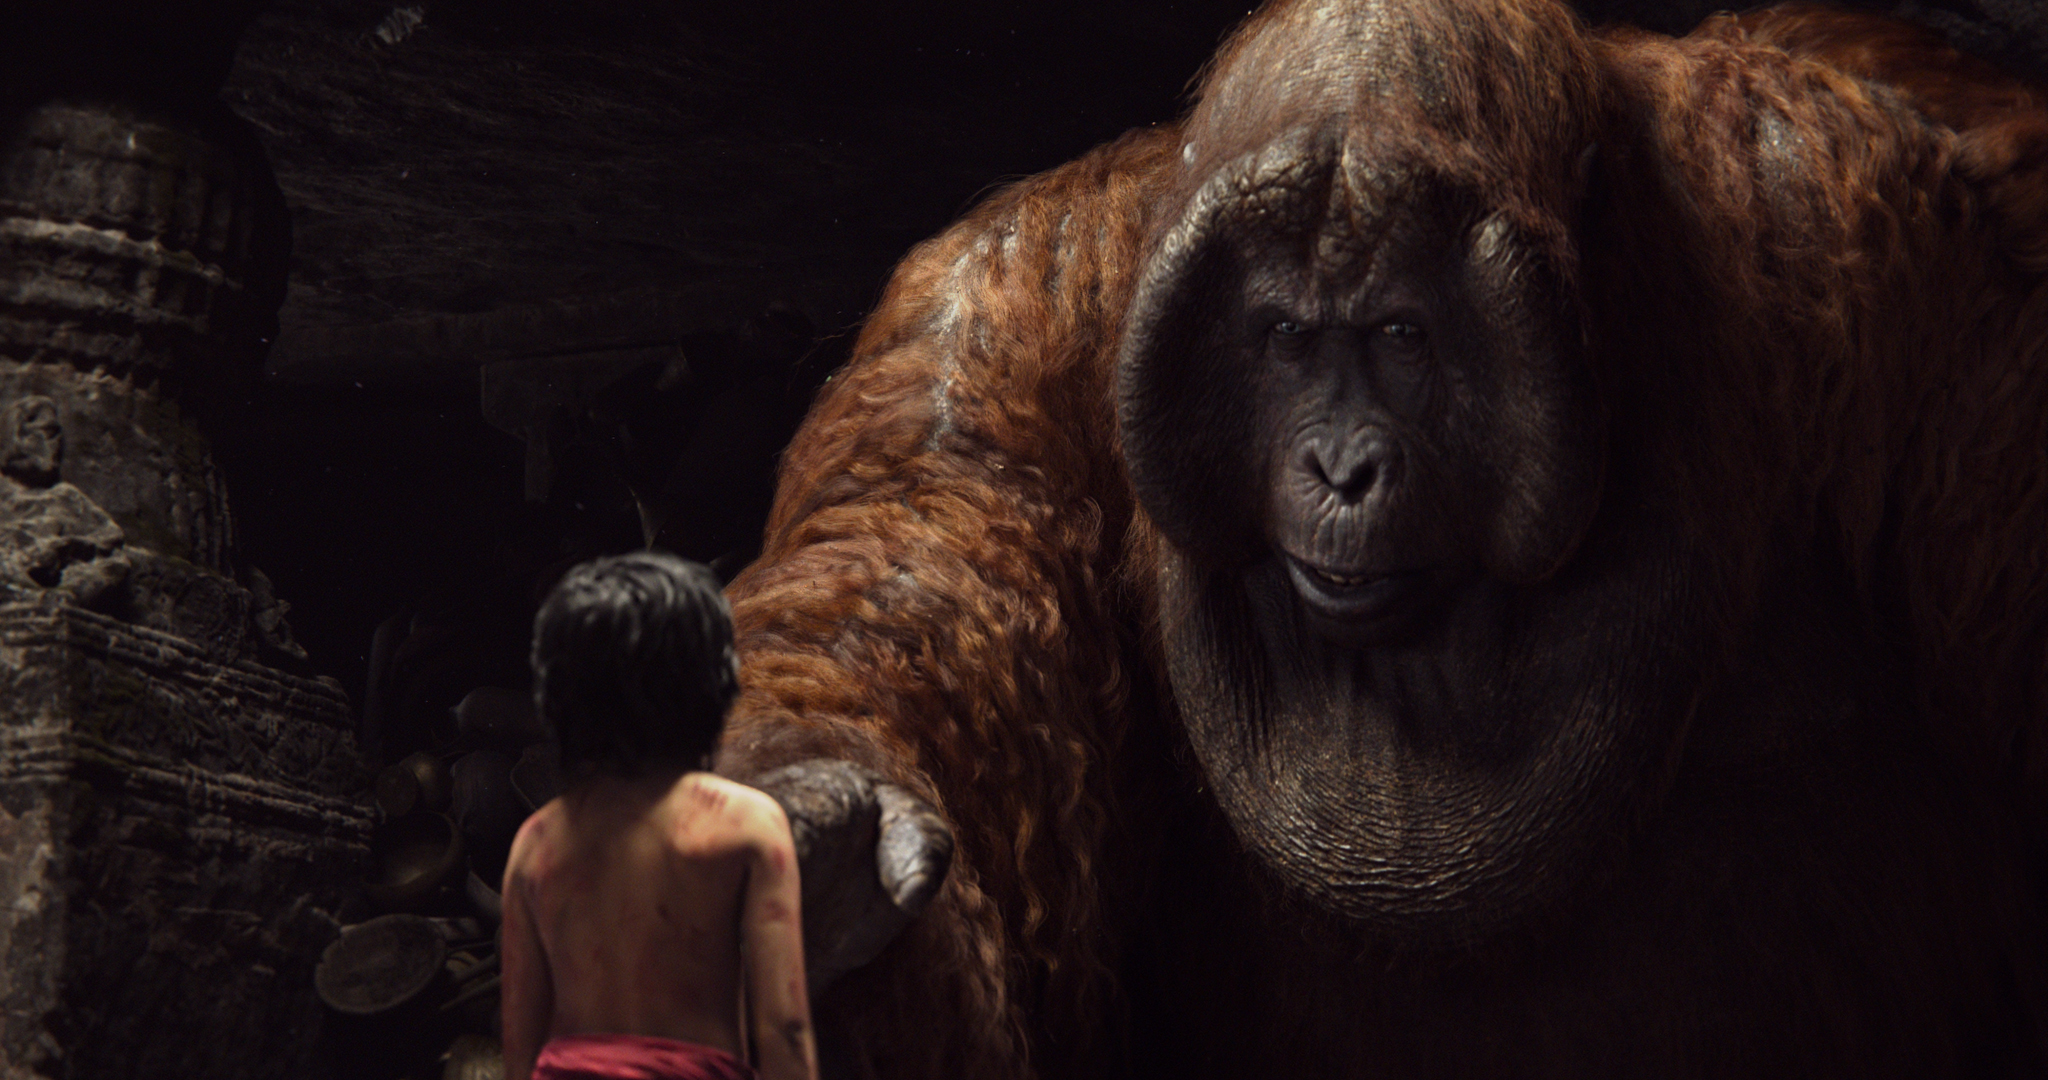 THE JUNGLE BOOK - (Pictured) MOWGLI and KING LOUIE ©2015 Disney Enterprises, Inc. All Rights Reserved.